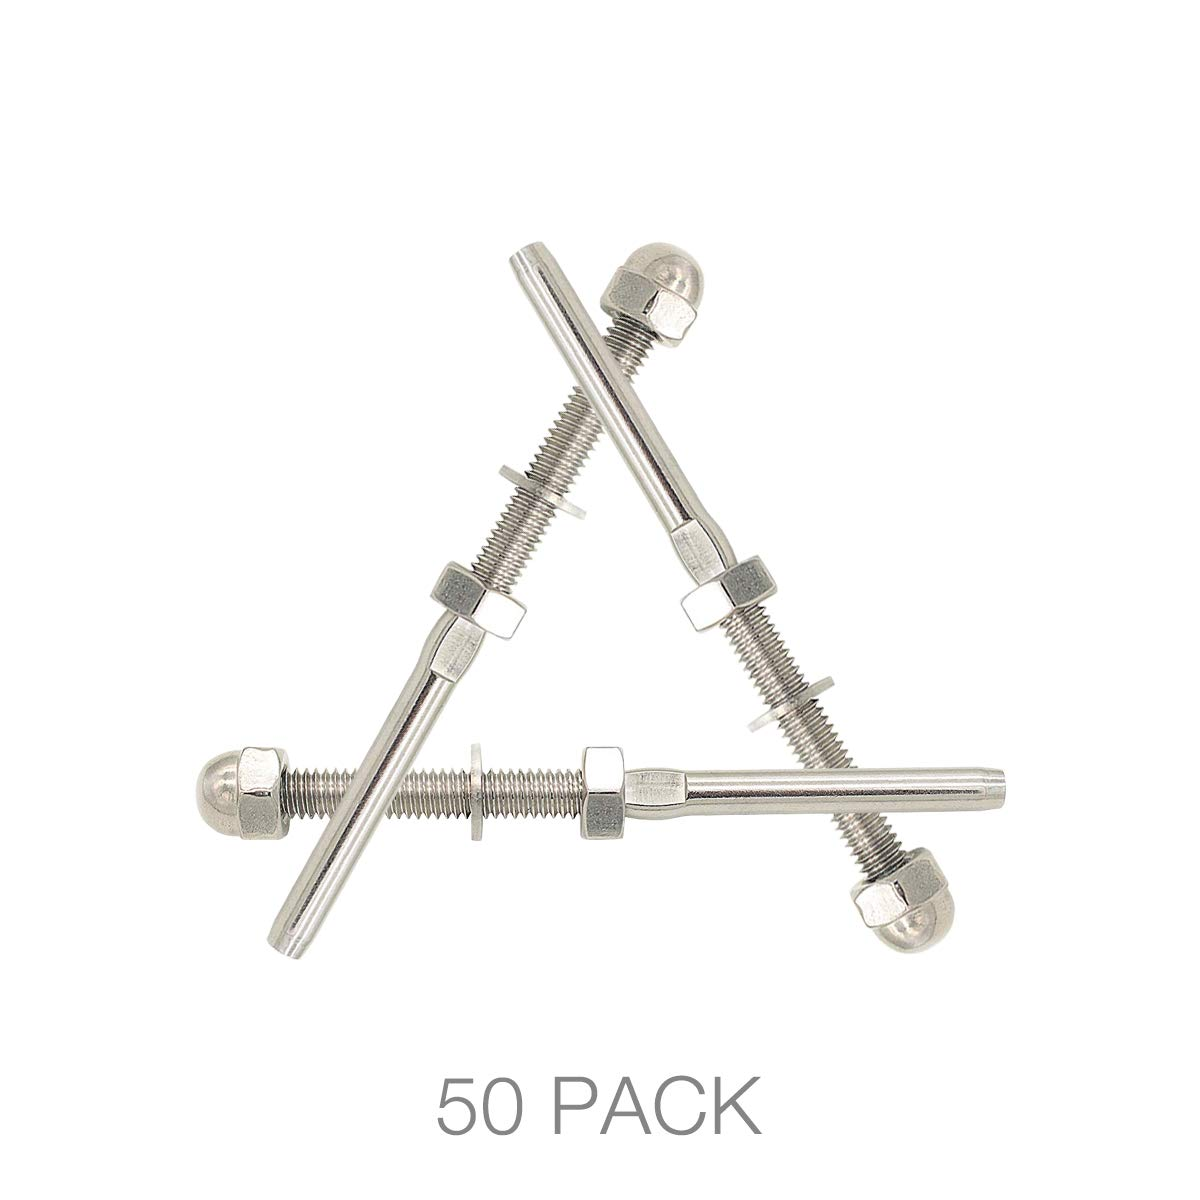 Cable Railing Kit,Cable Tensioner 100 100 Pack Fayevorite Threaded Terminal Stud End Threaded Tension Stud End,Stainless Steel Hand Swage Stud for 1//8 Cable Deck Railing,Rail System